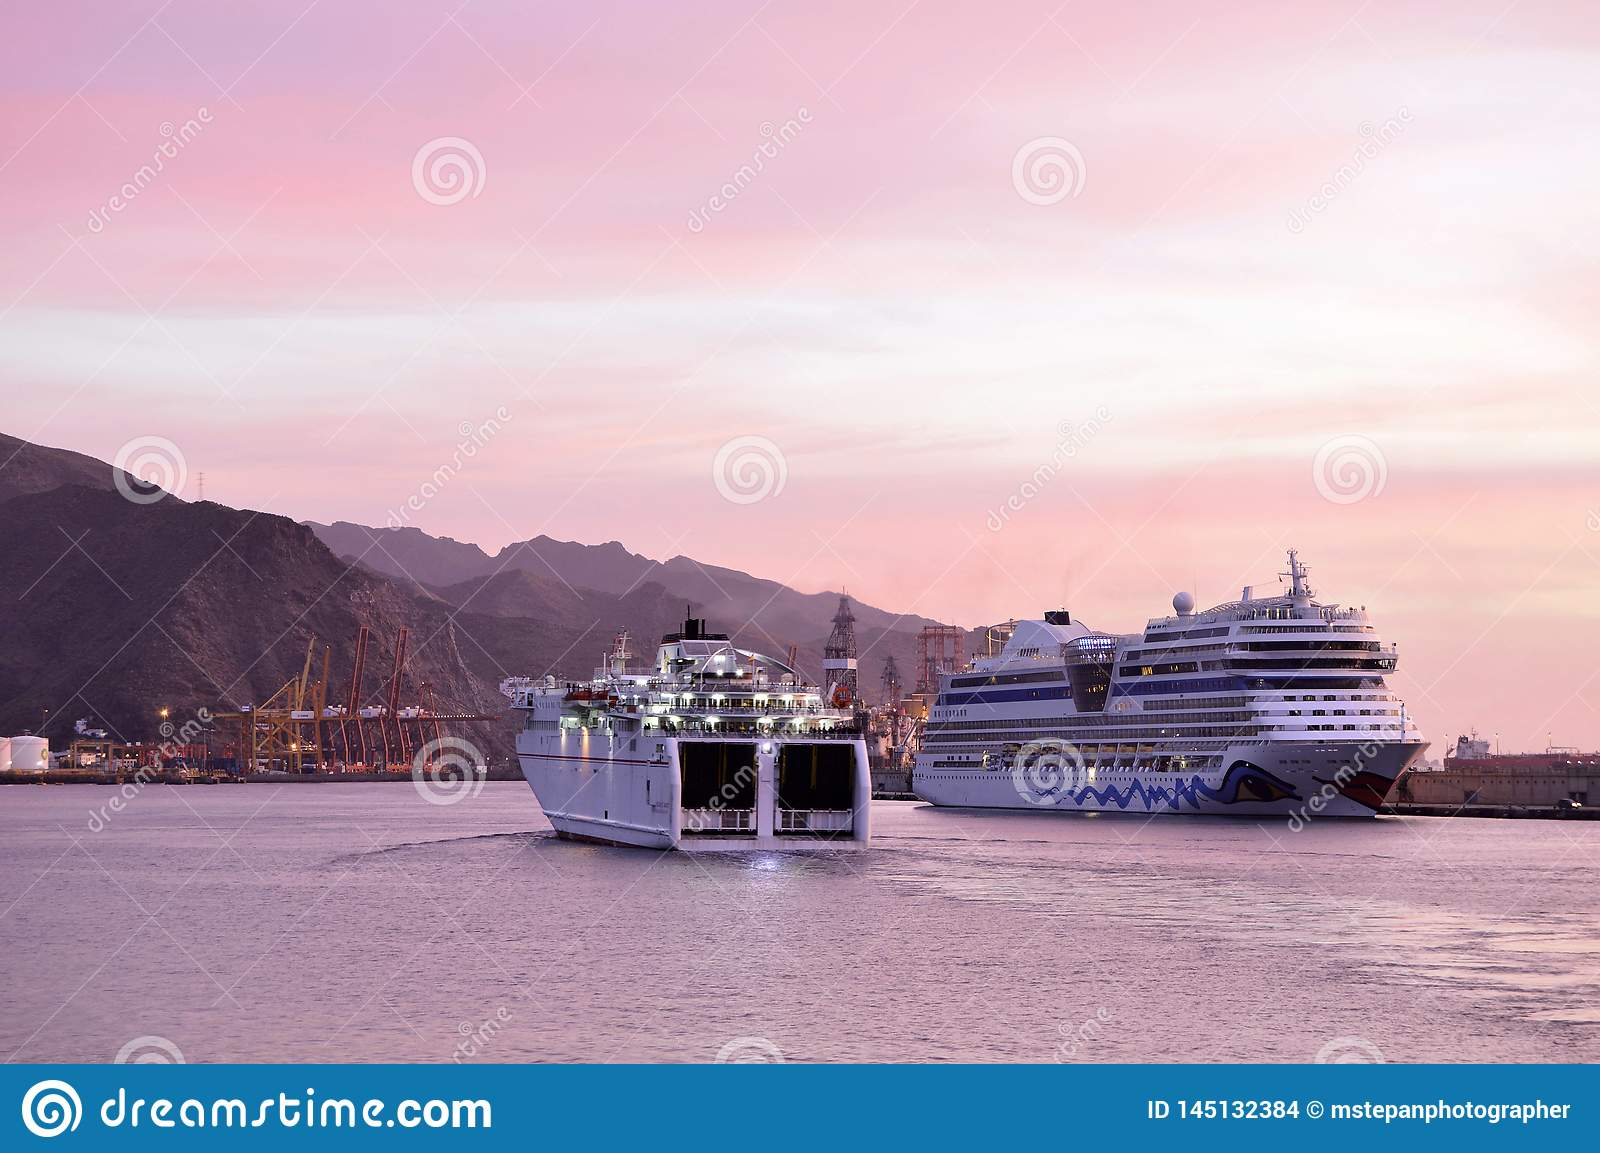 Modern cruise ships Tenerife Canary Islands